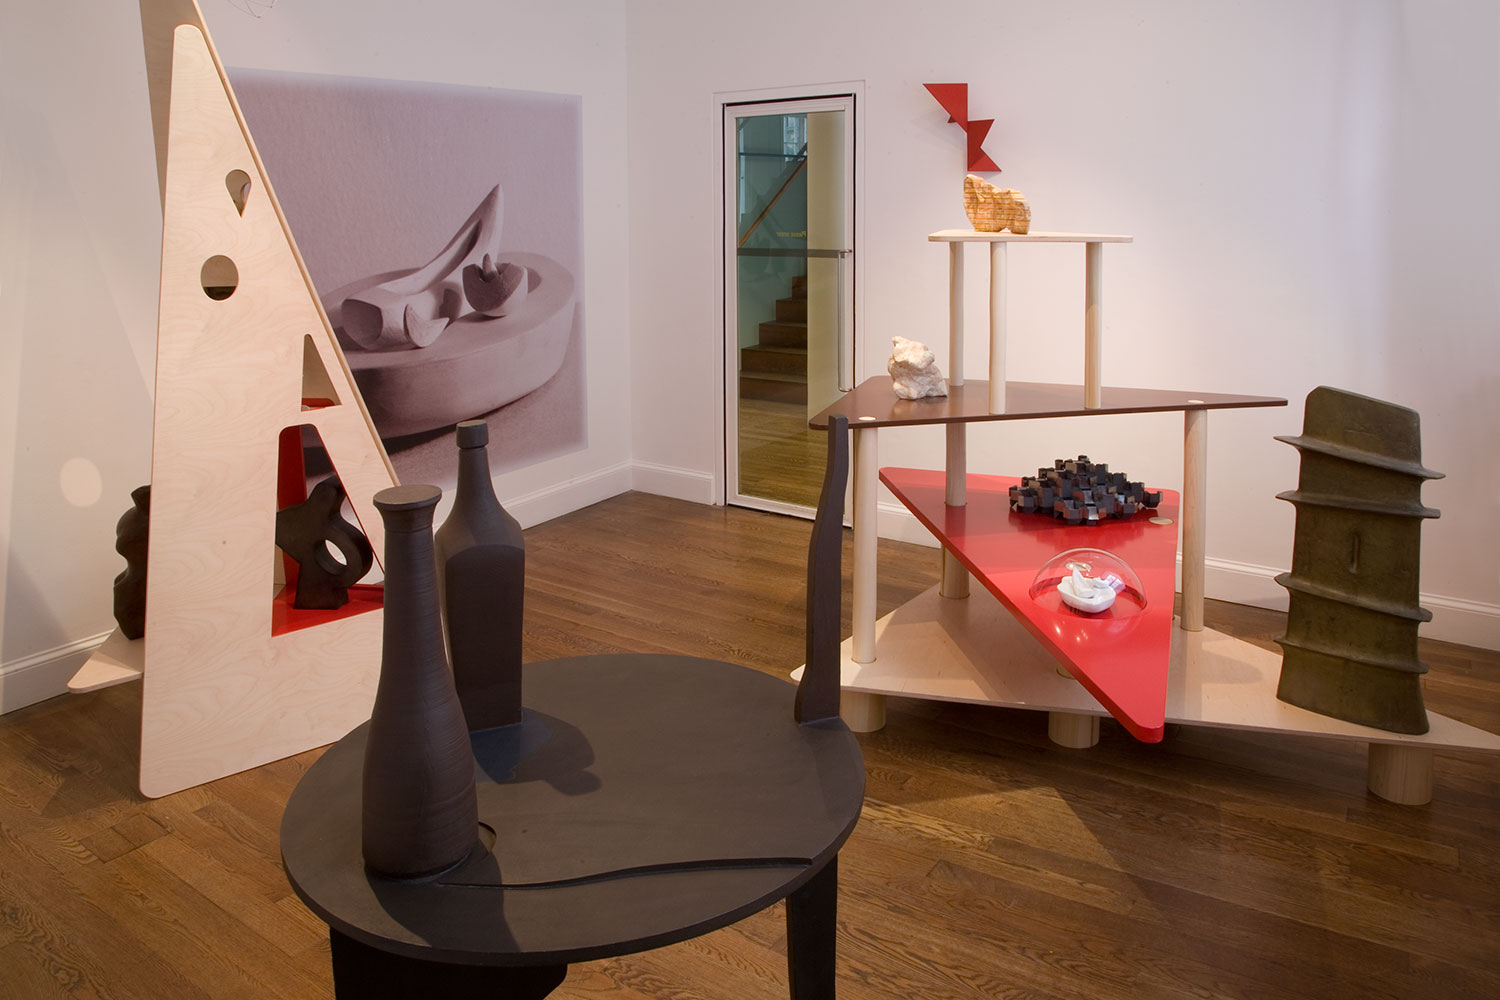 Installation view of kissingcousins 1